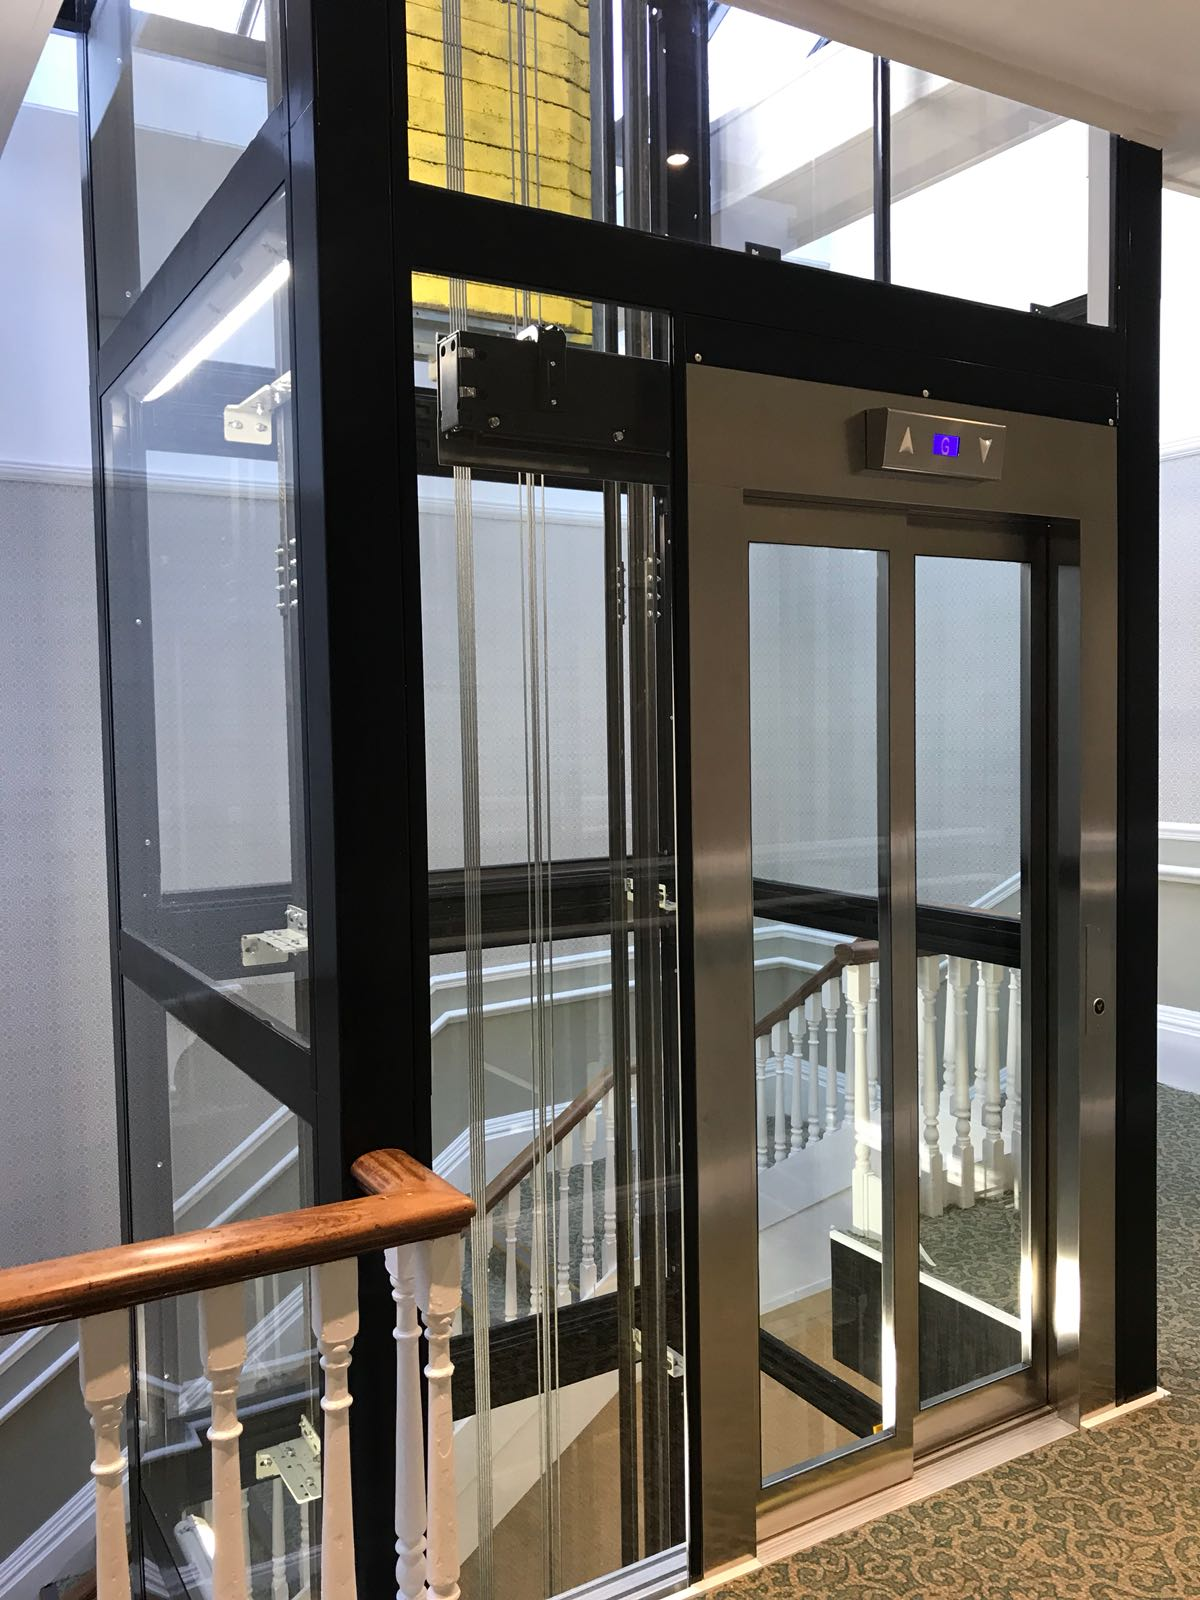 rj lift glass elevator with closed doors